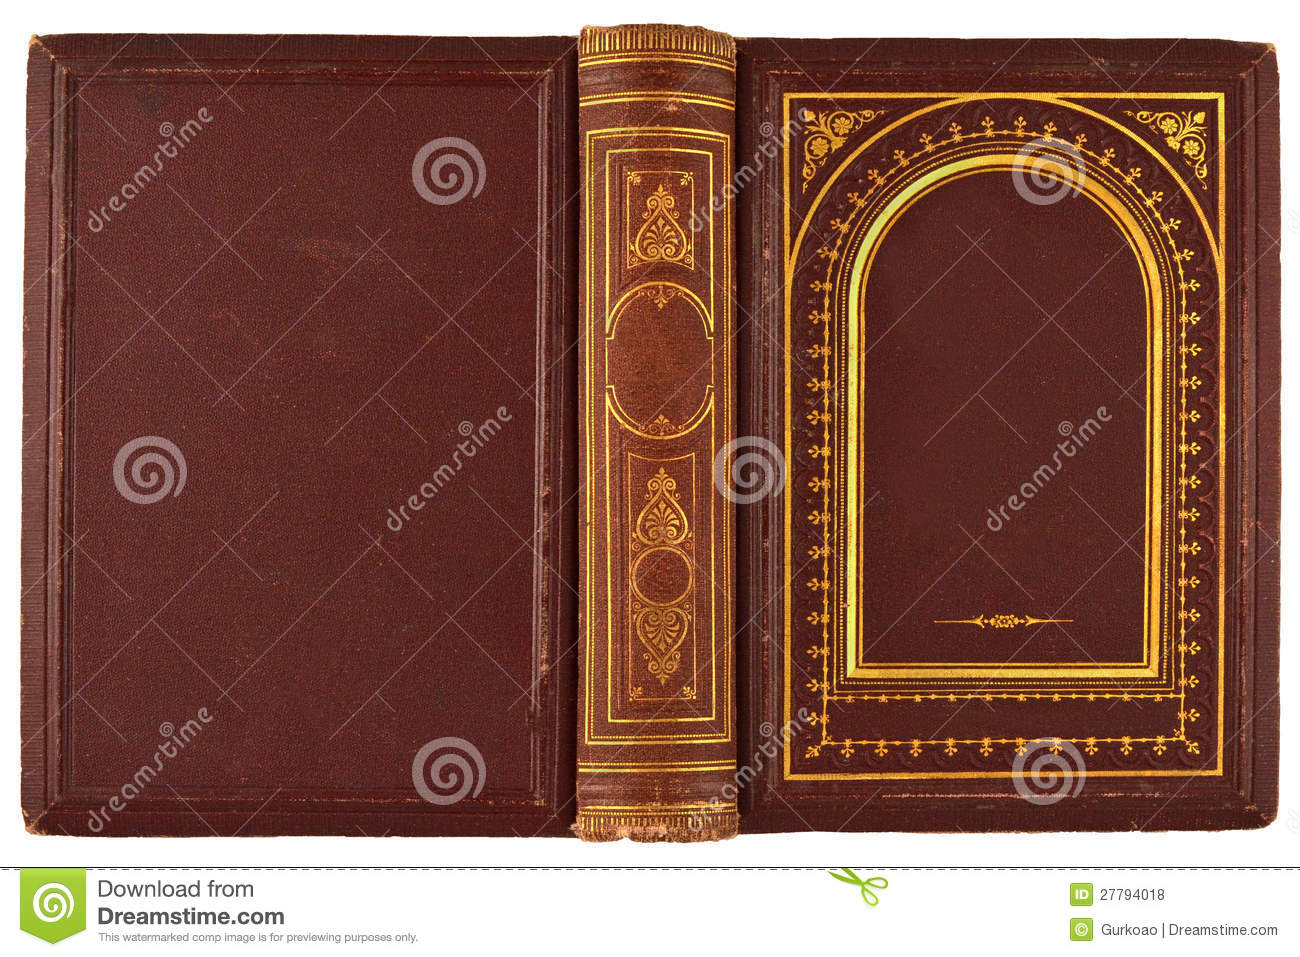 Pictures Of Old Book Covers : Old book cover stock photo image of letter frame effect